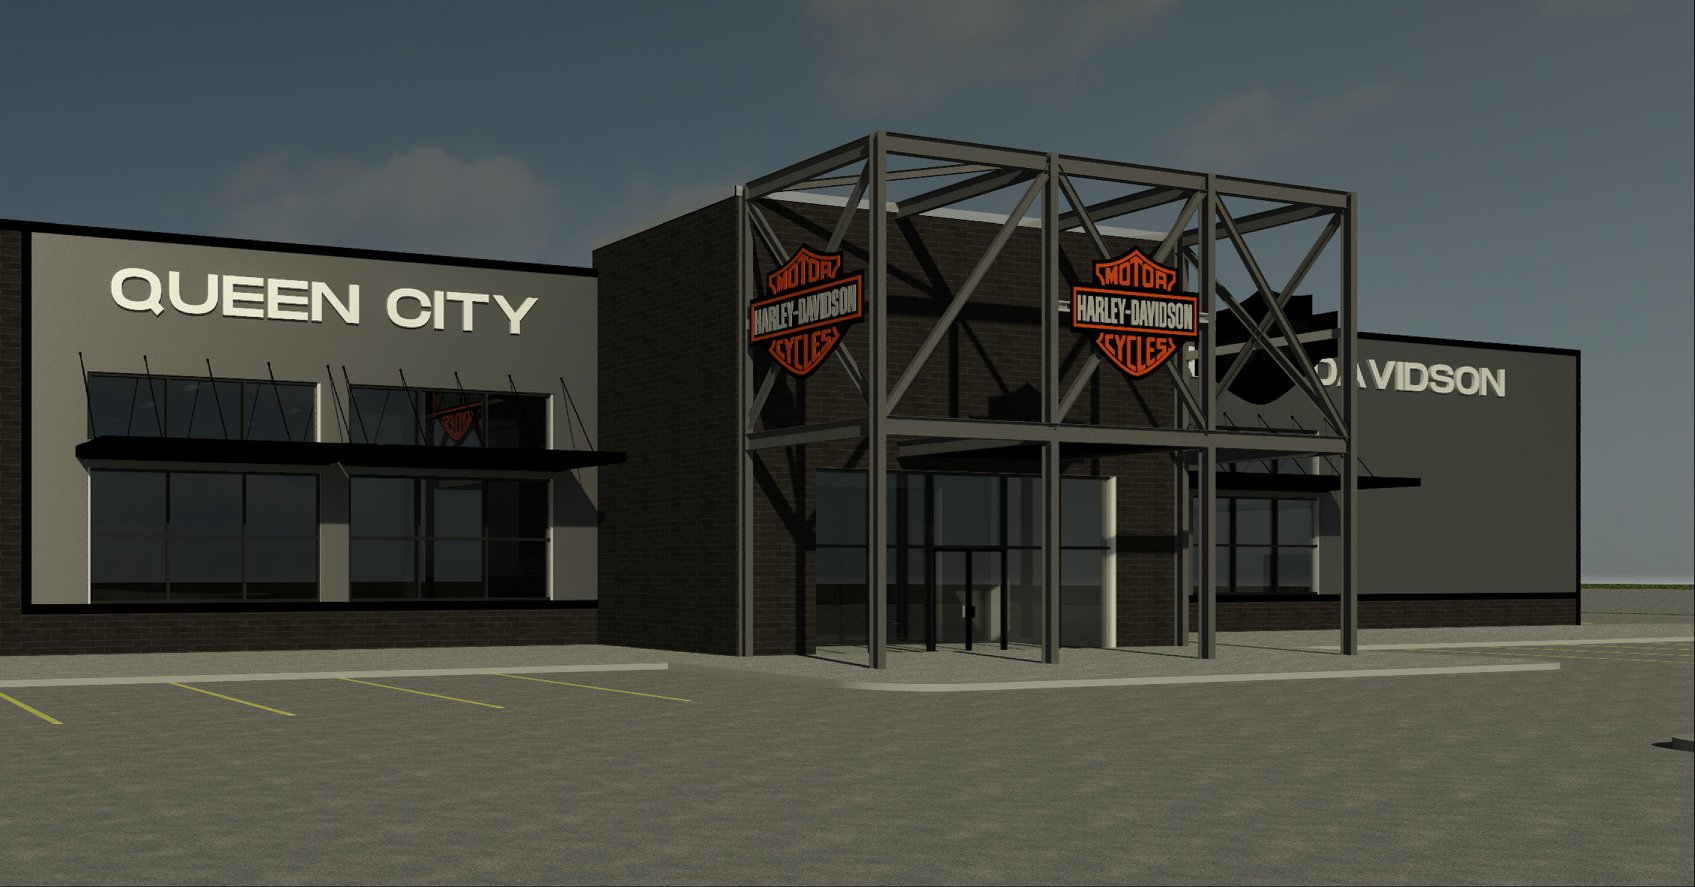 Queen City Harley